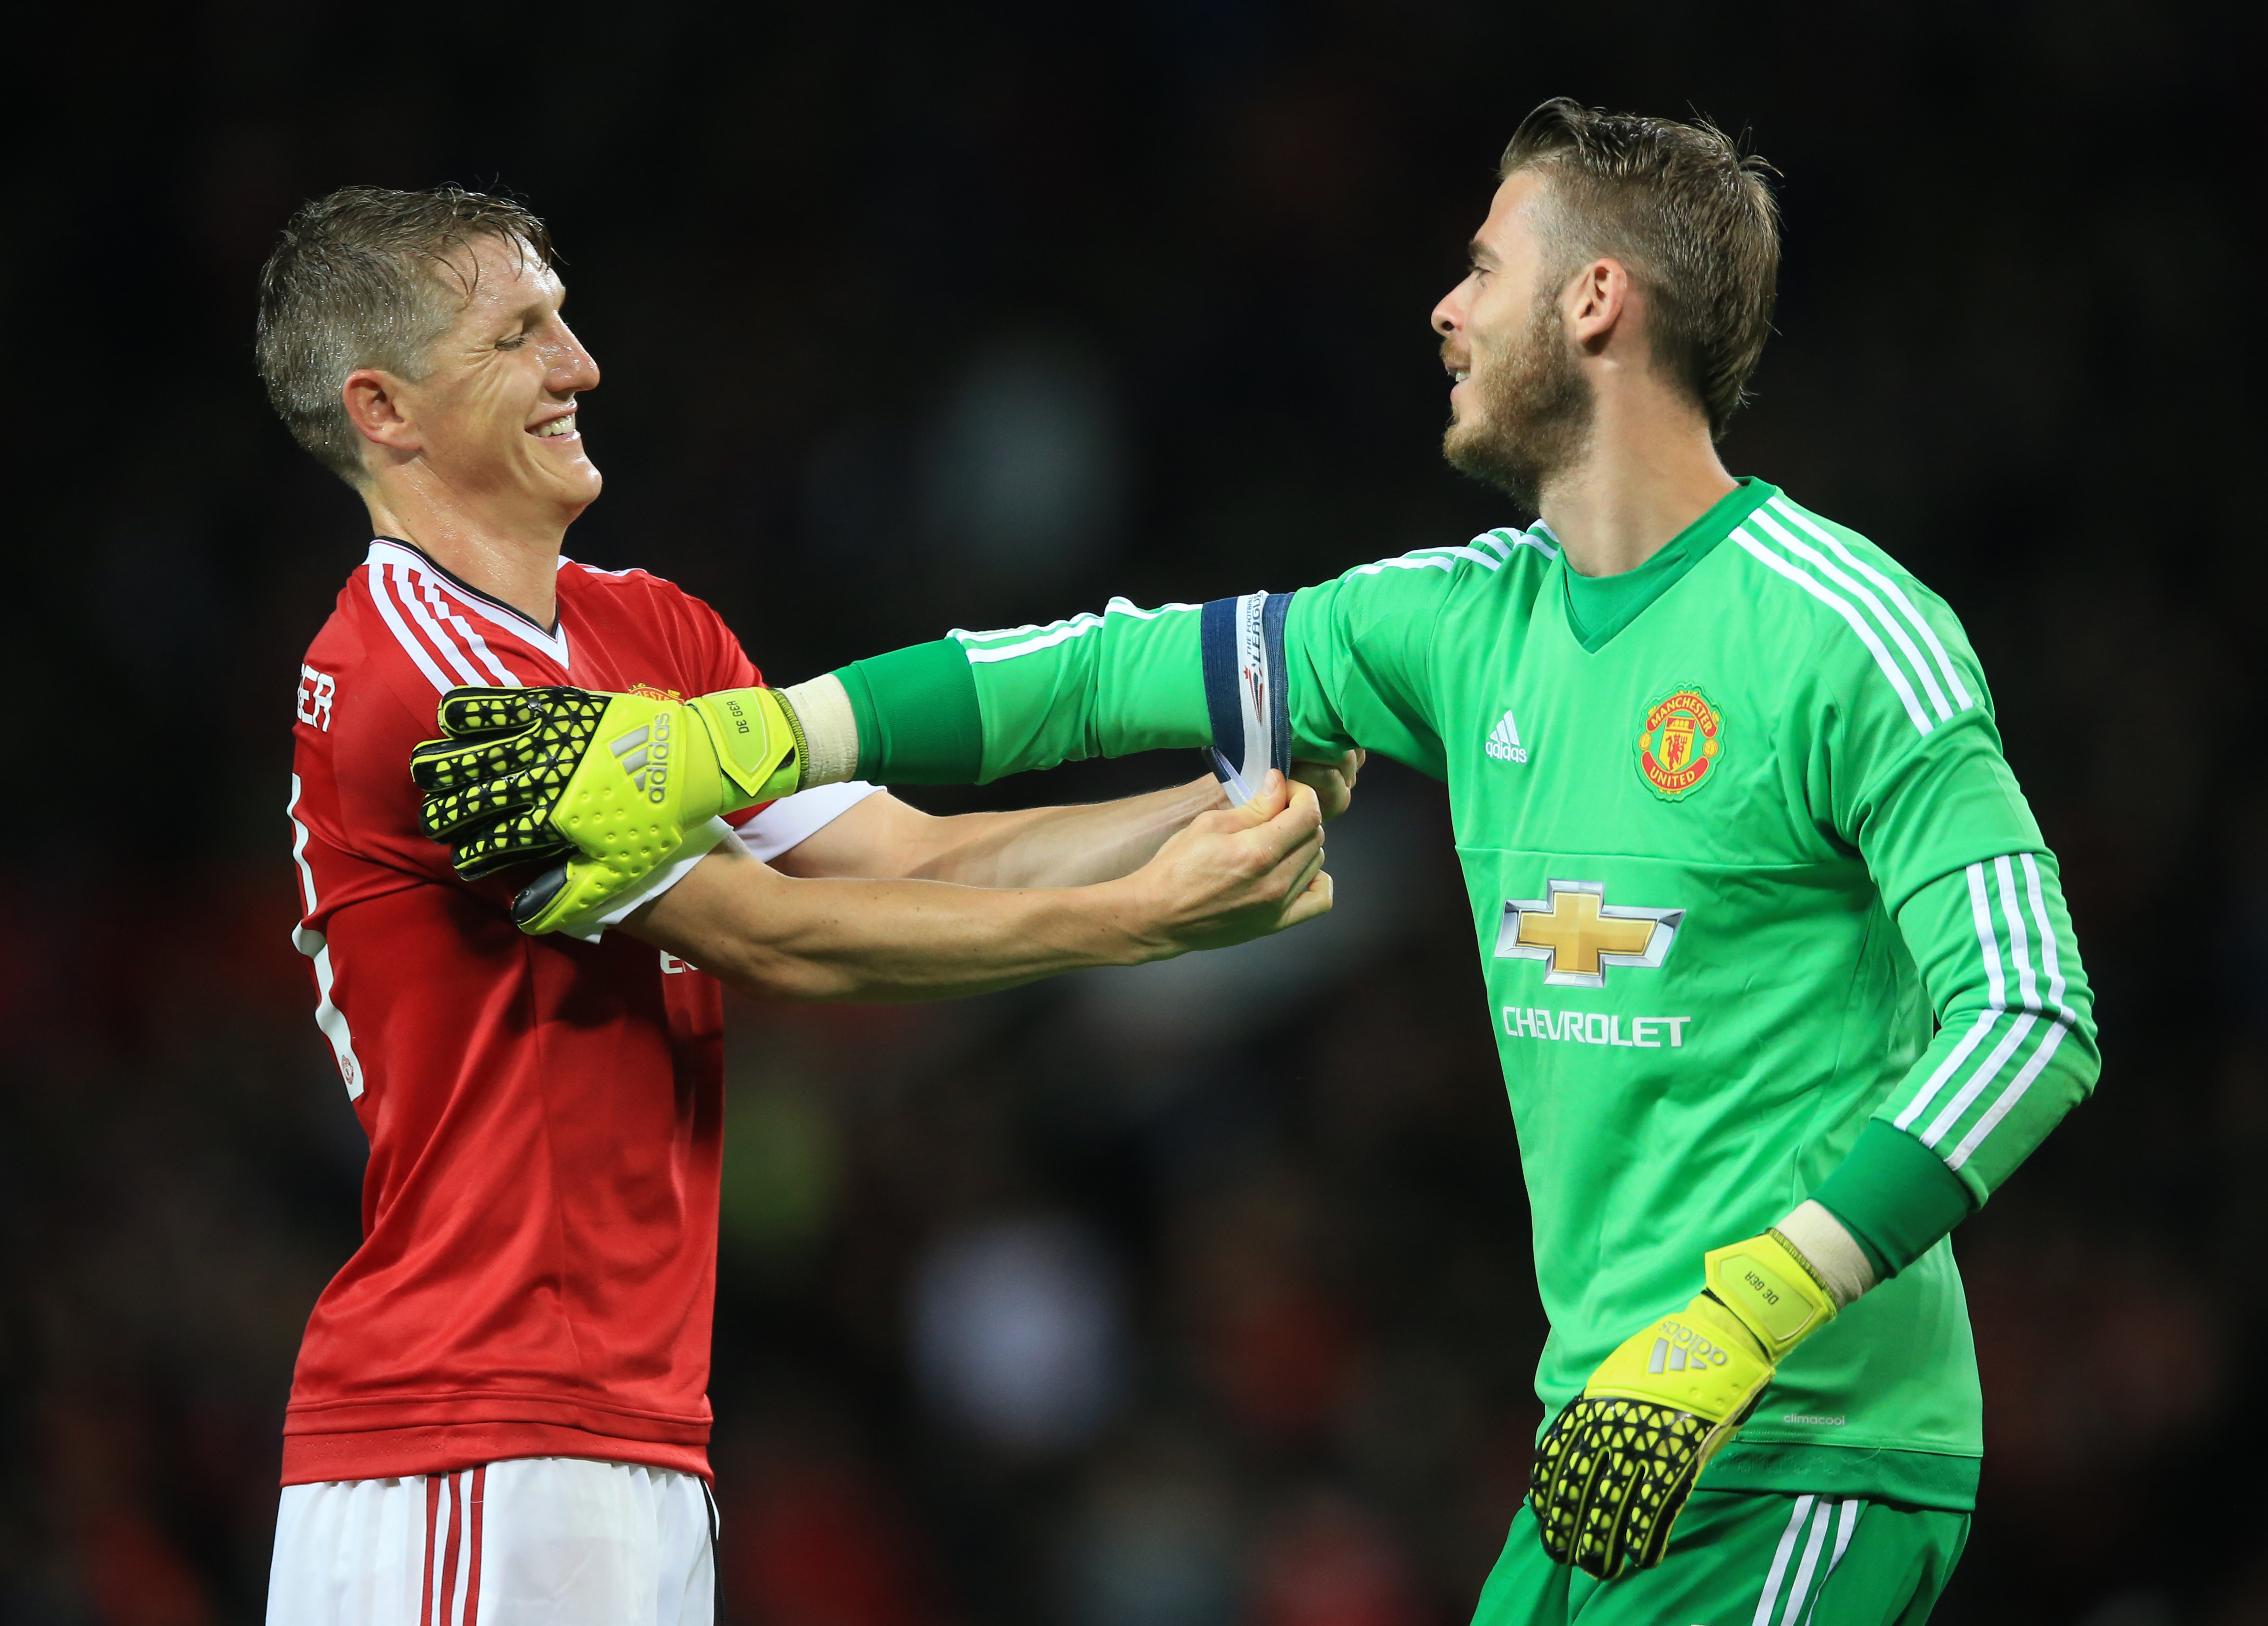 Soccer - Capital One Cup - Third Round - Manchester United v Ipswich Town - Old Trafford